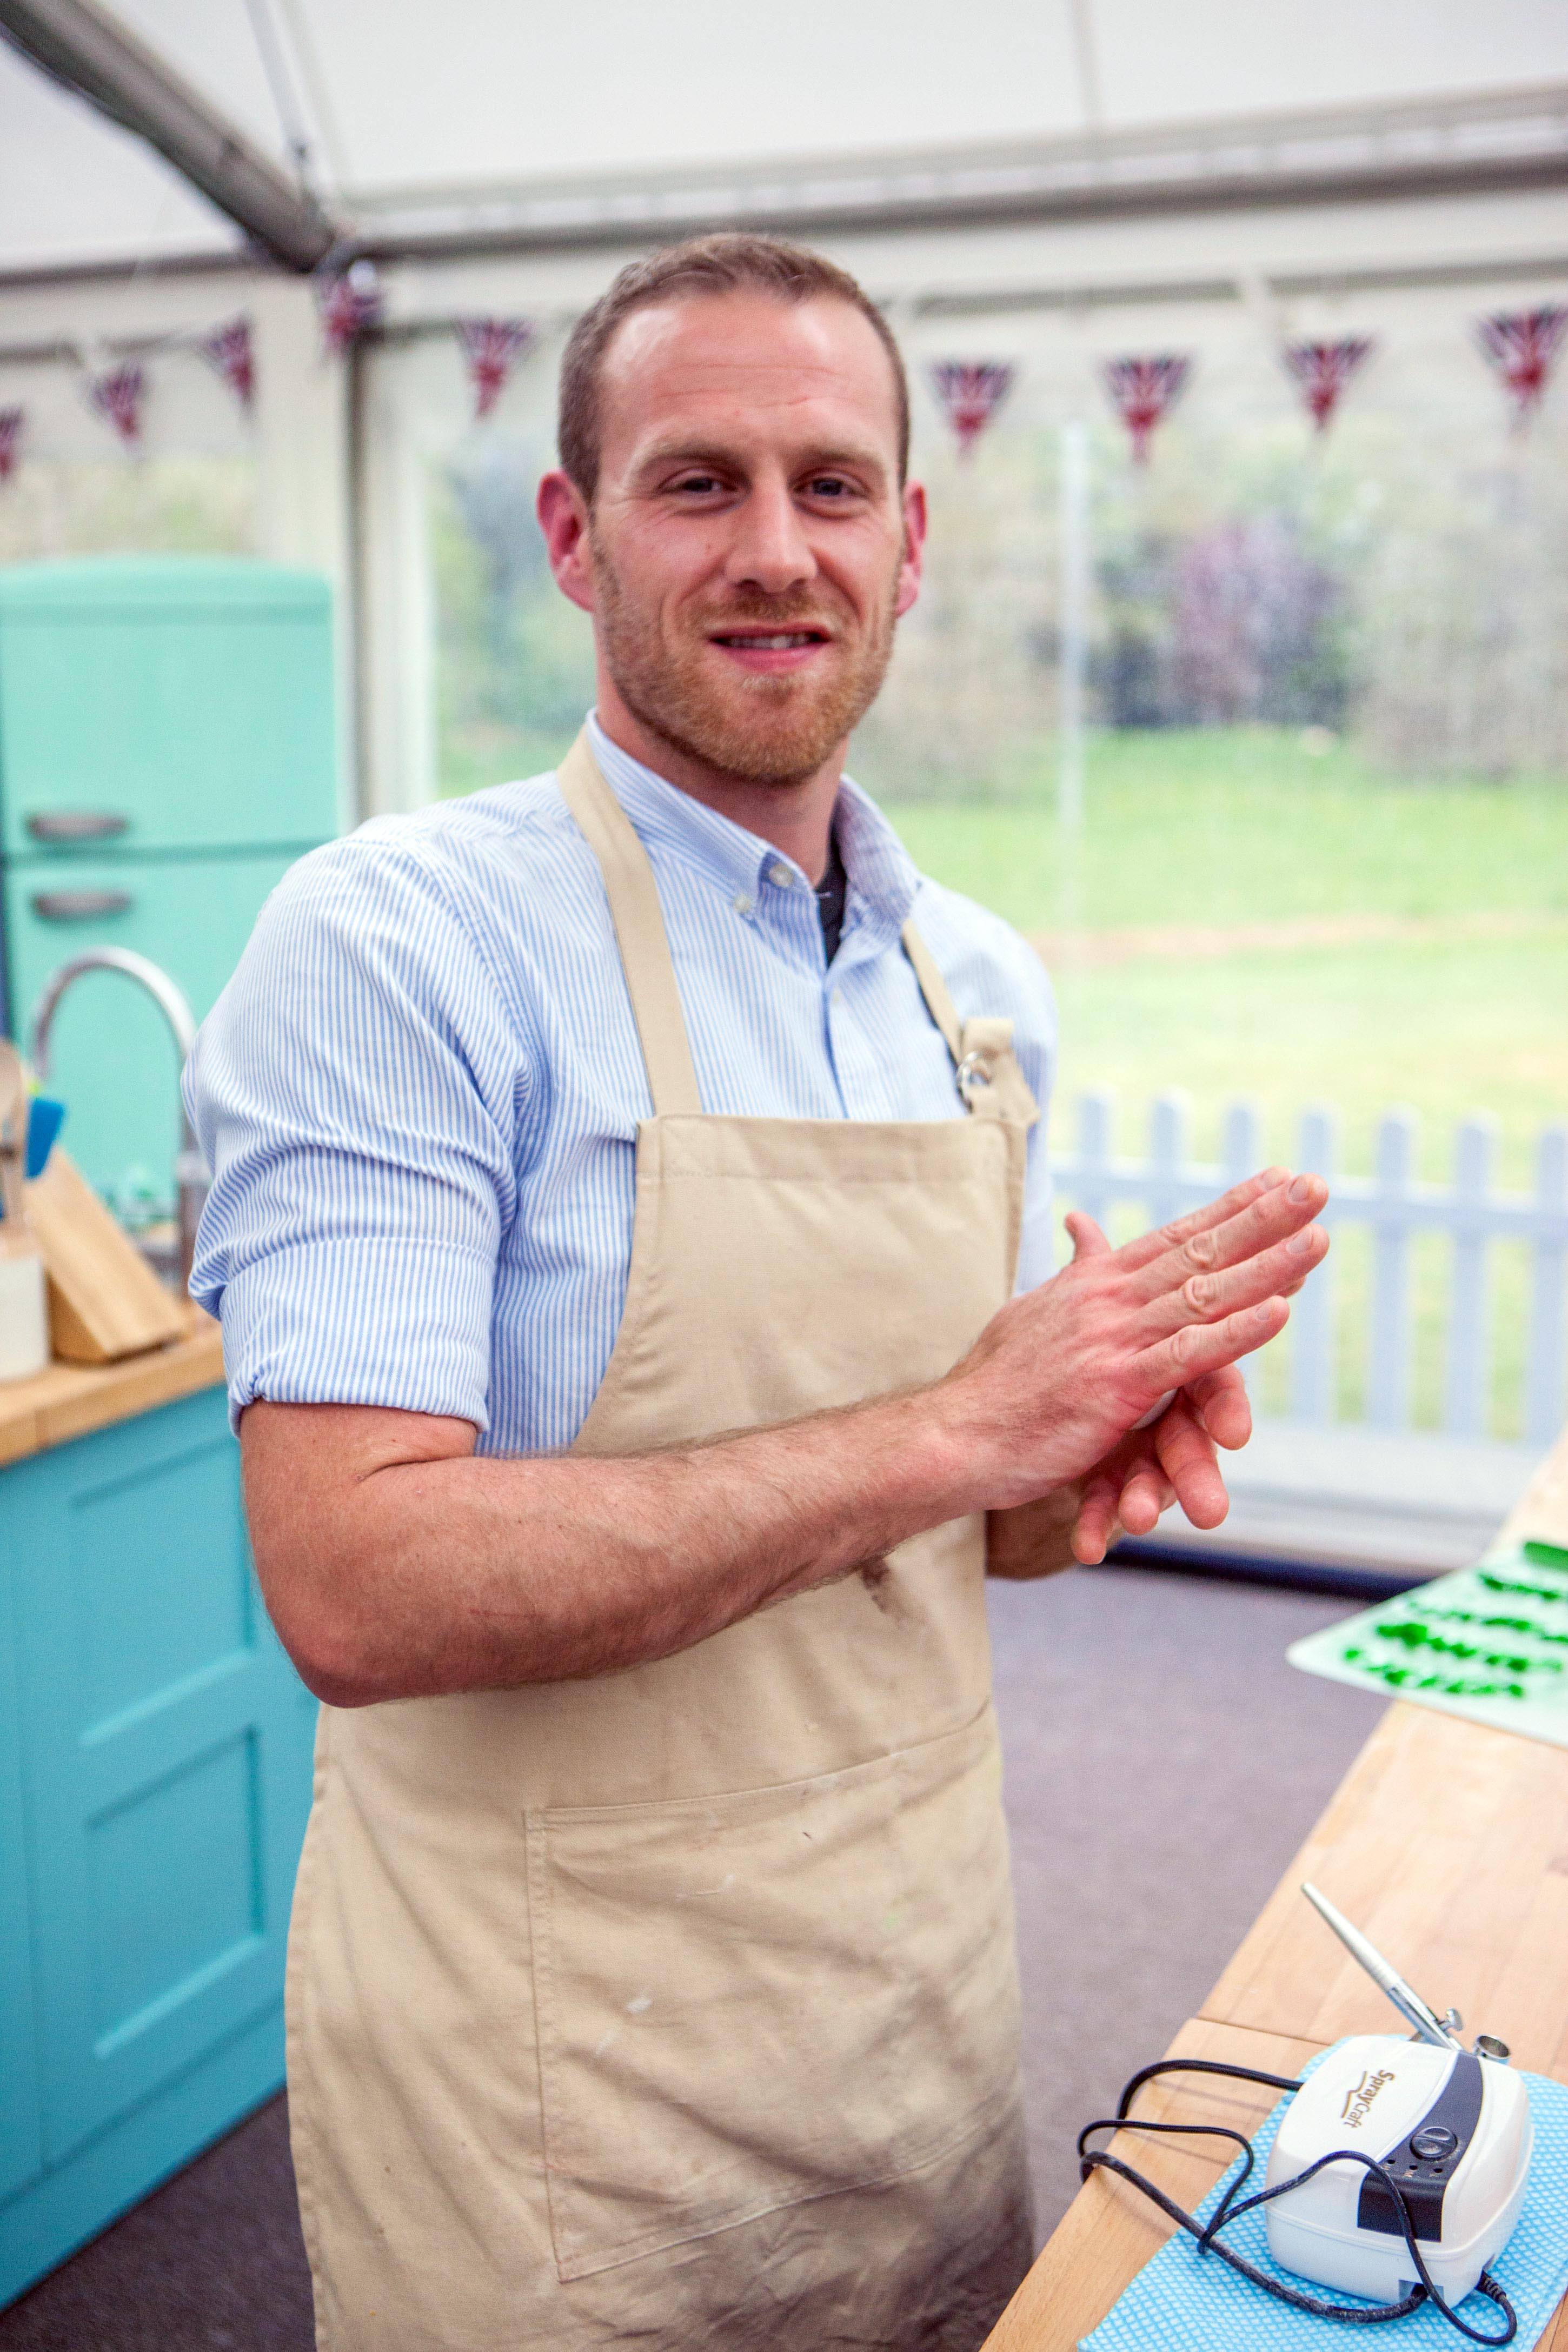 Steven on the Great British Bake Off